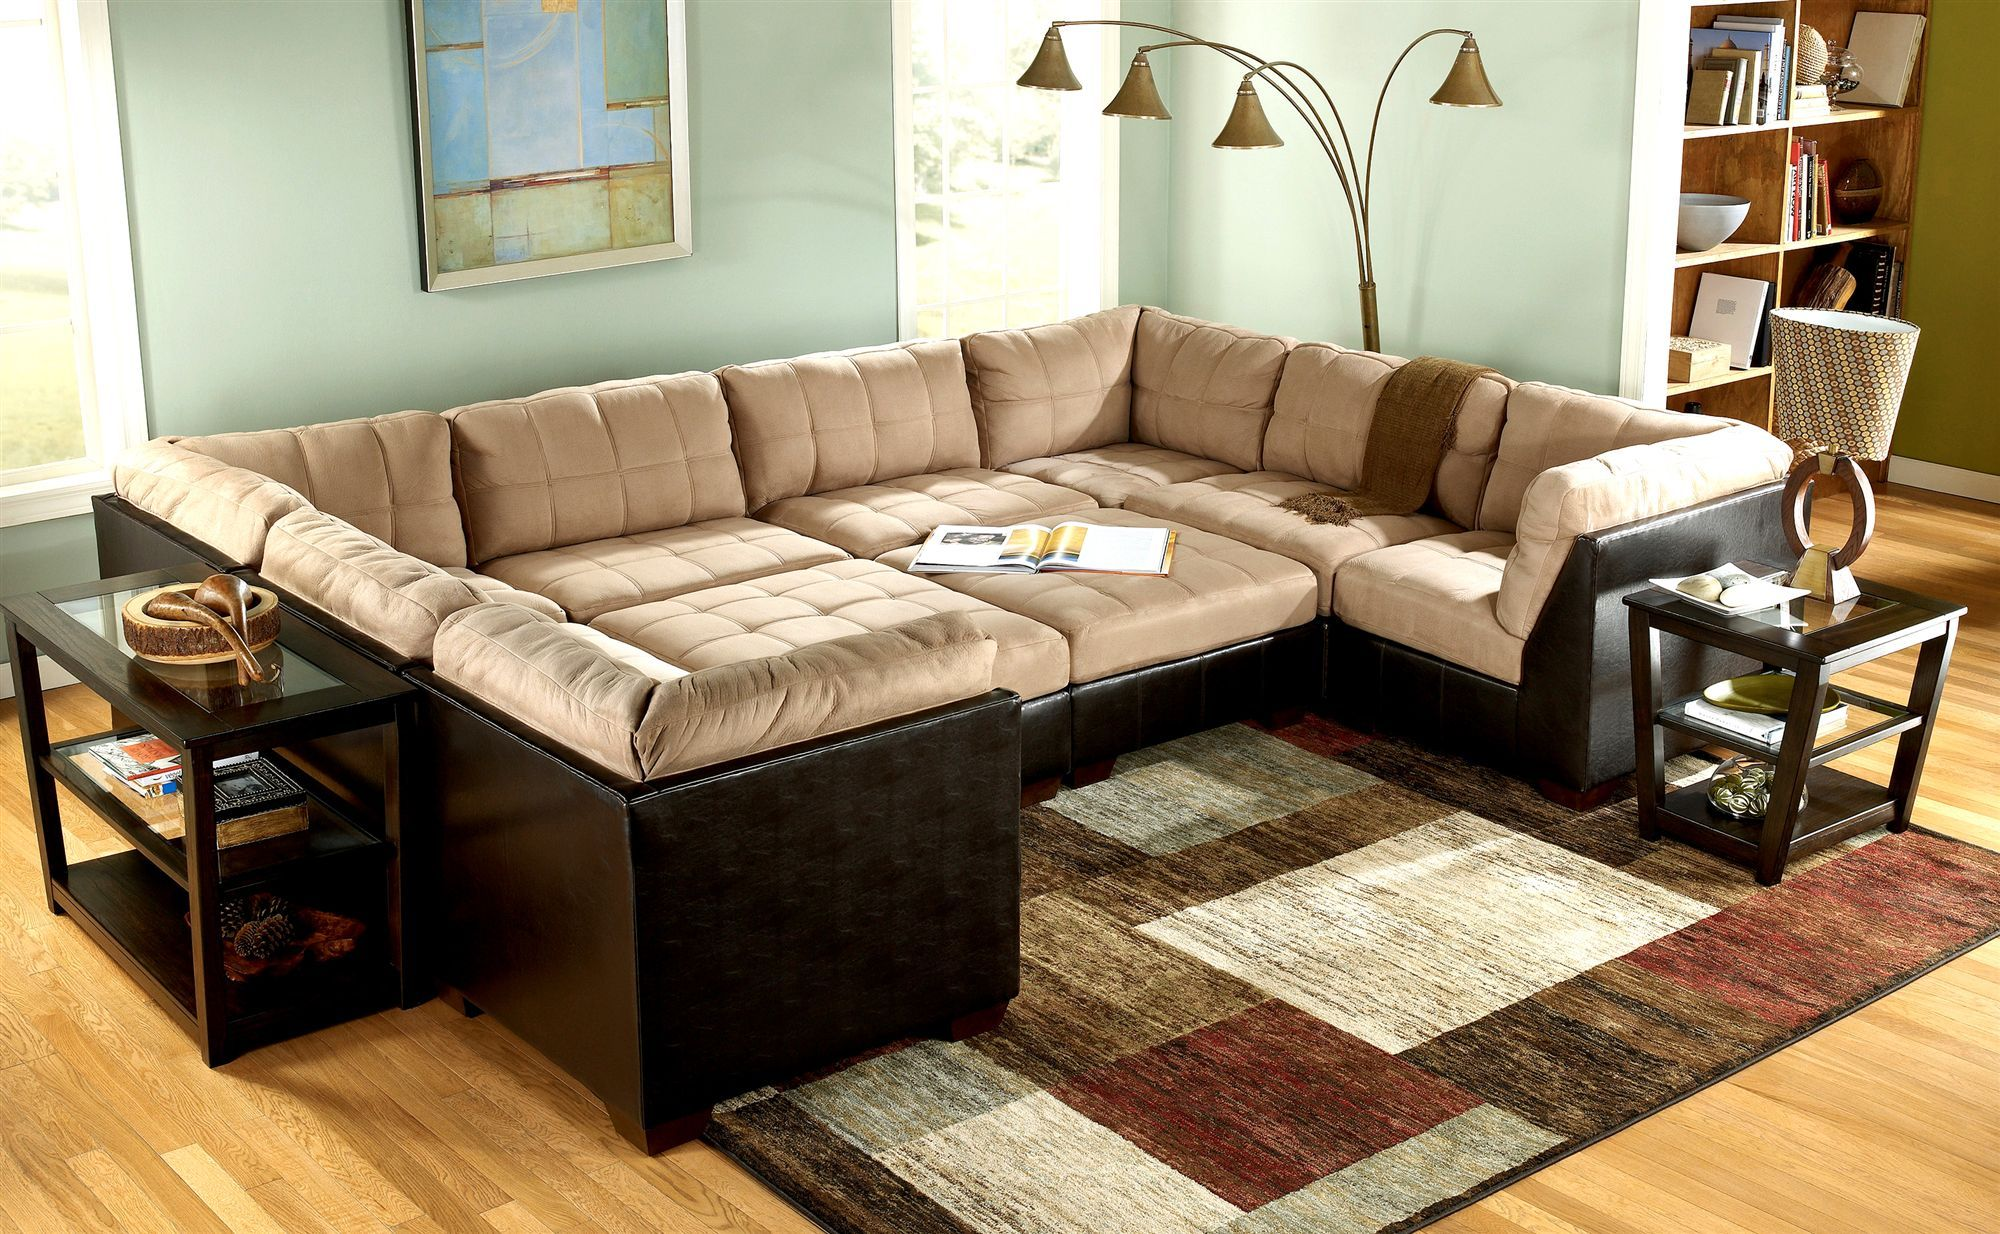 Pit Couch Furniture Buy Online Cheap Ivgstores Furniture